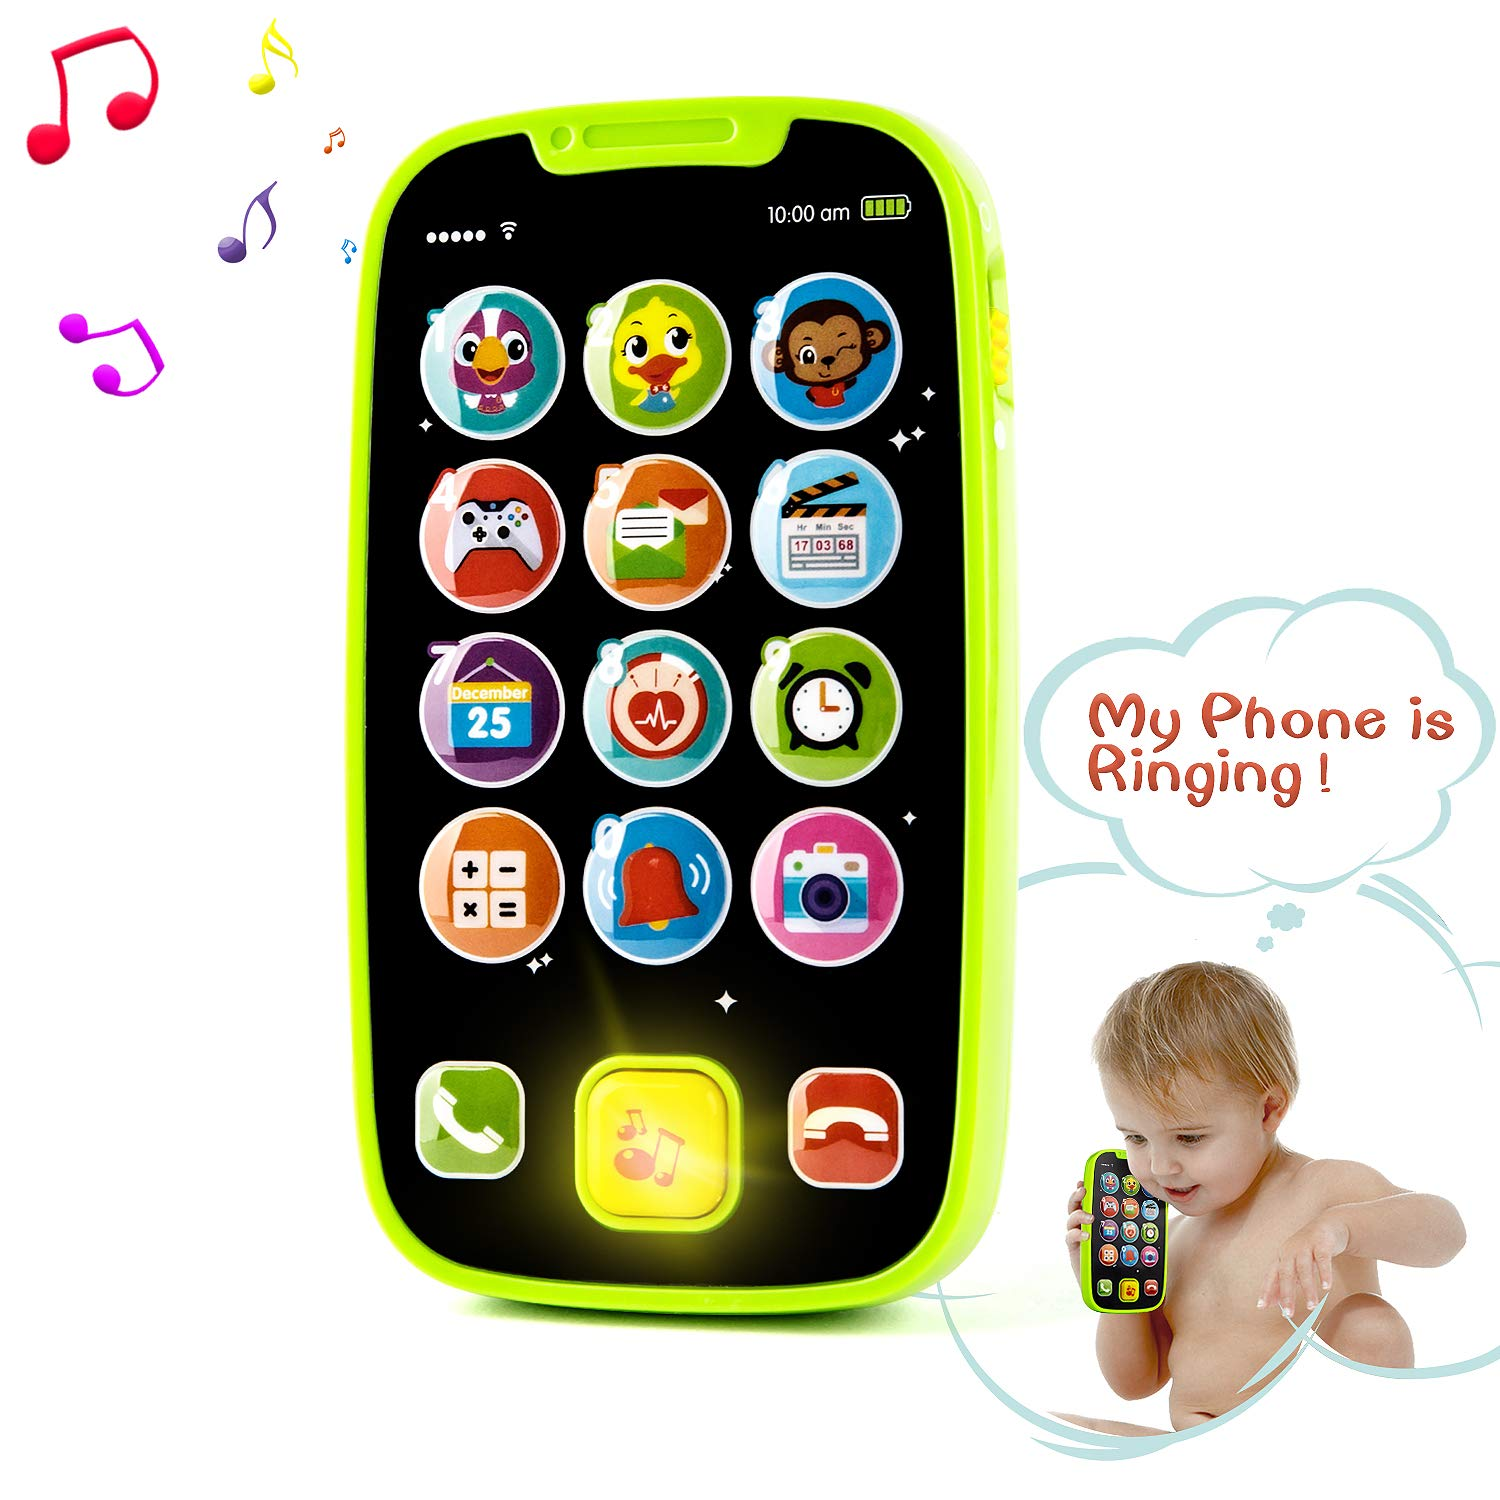 HISTOYE Baby Phone Toys for 1 + Year Old , Sing and Count Toy Cell Phone for Toddlers, Role Play Baby Phone for Early Learning Educational Gifts by HISTOYE